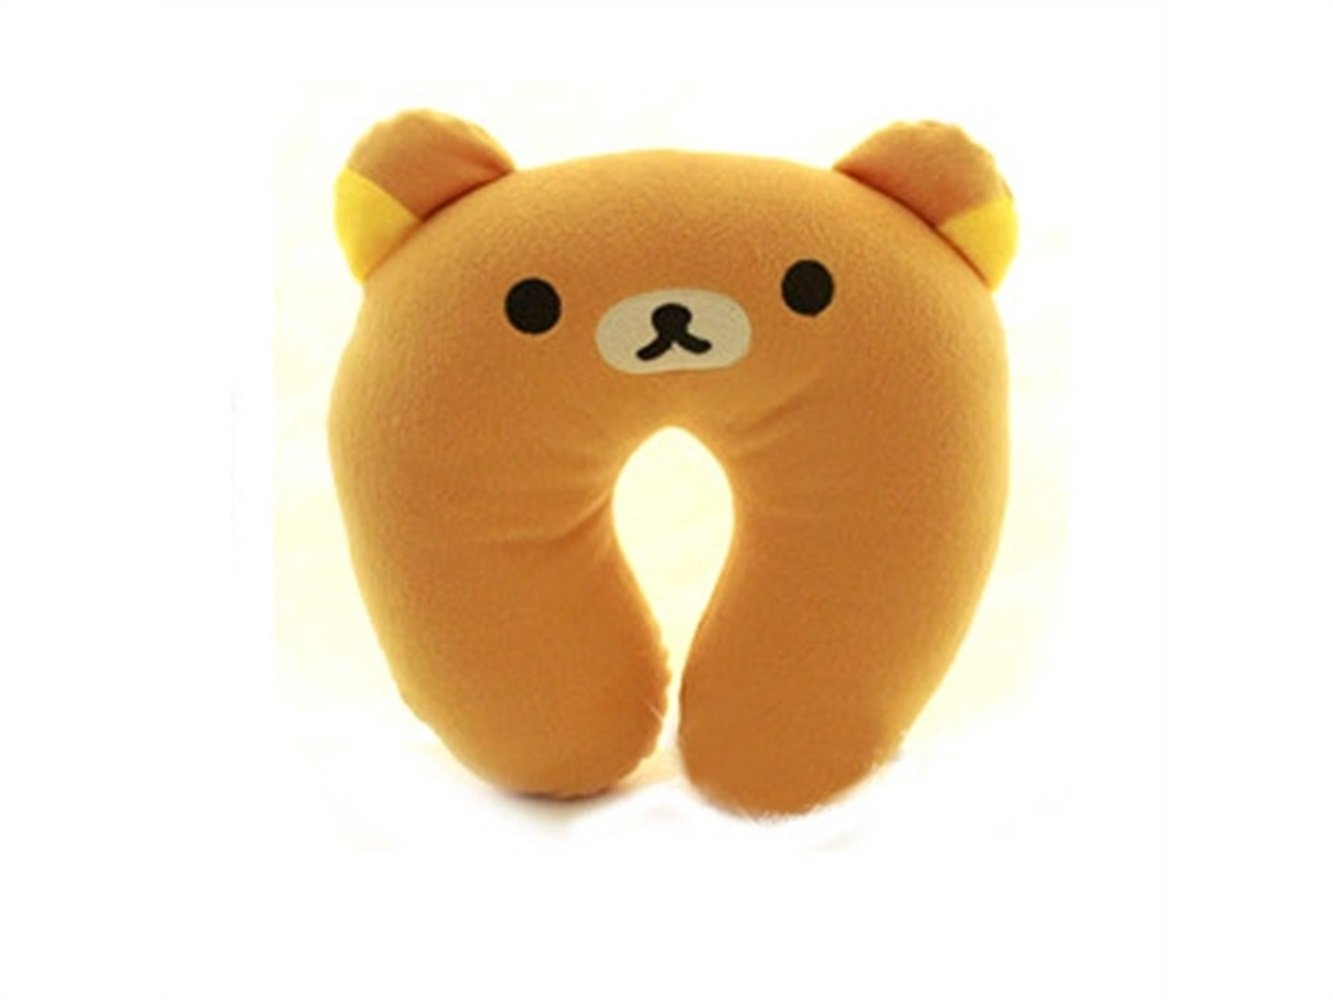 Yuchoi Perfectly Shaped Cartoon Animal U-shaped Neck Pillow Travel Car Airplane Seat Neck Rest for Home Office(Bear)